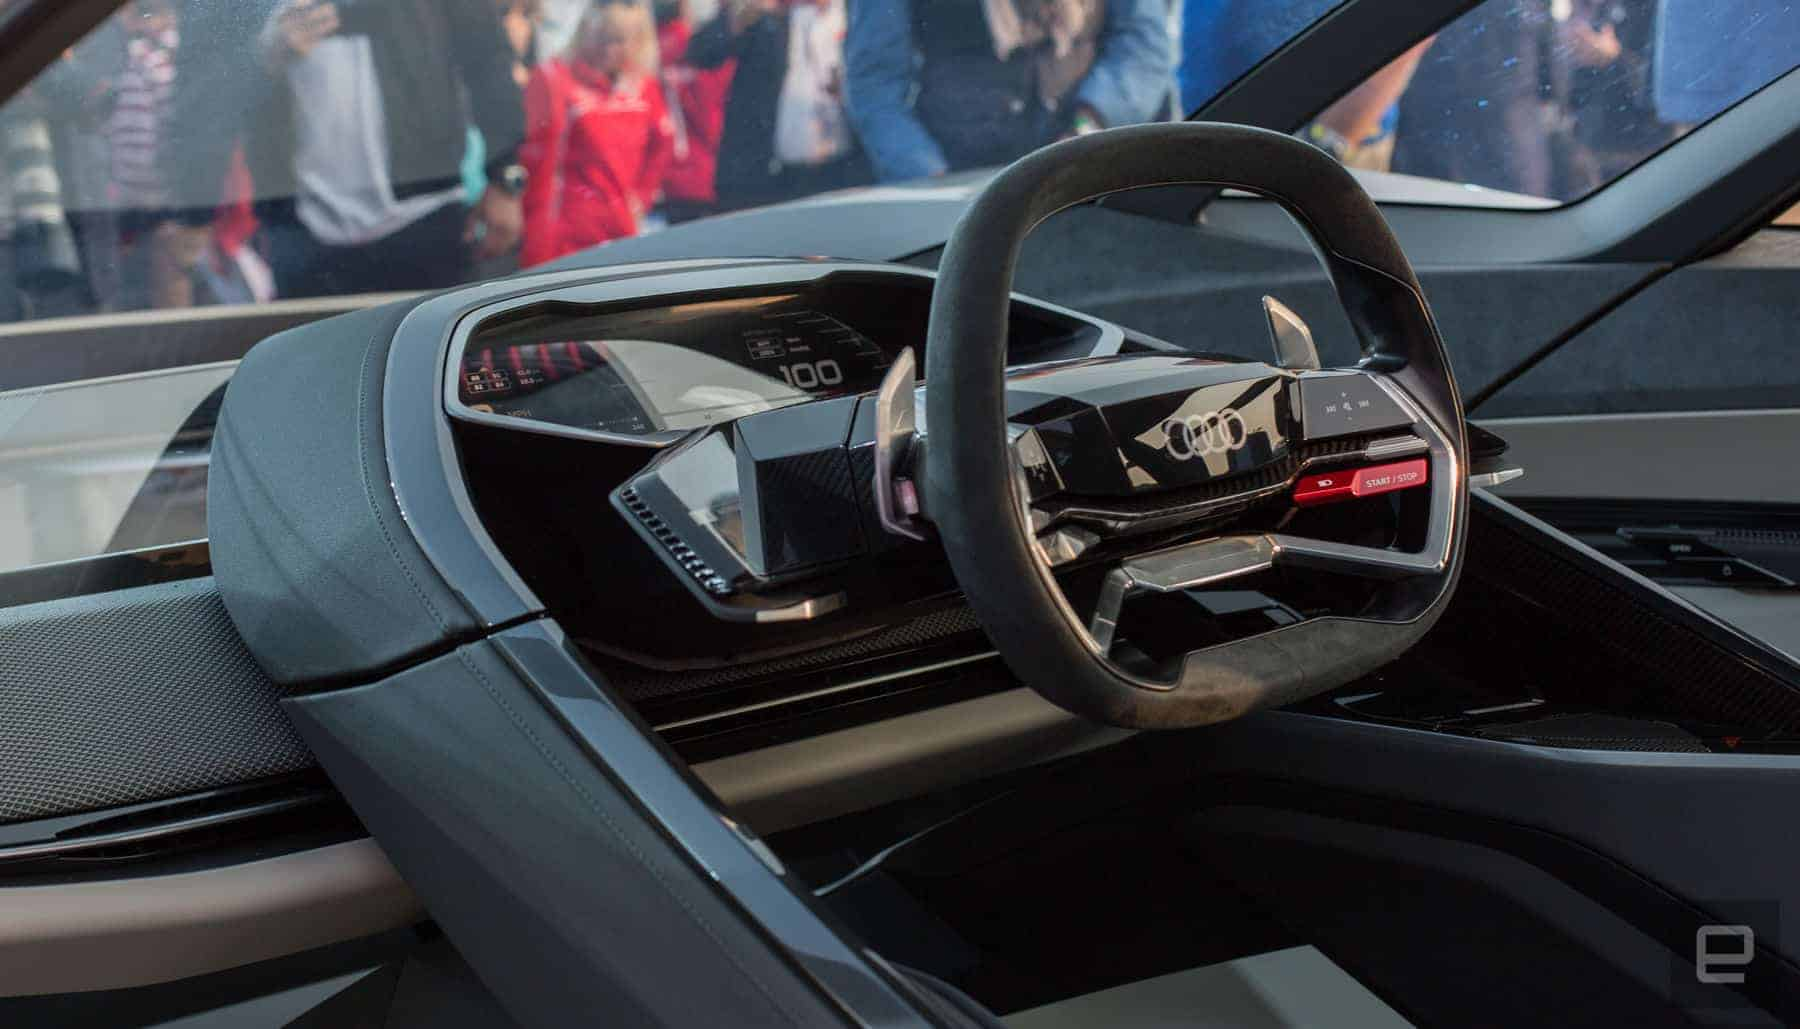 Concept do Audi e-Tron PB 18 (interior)